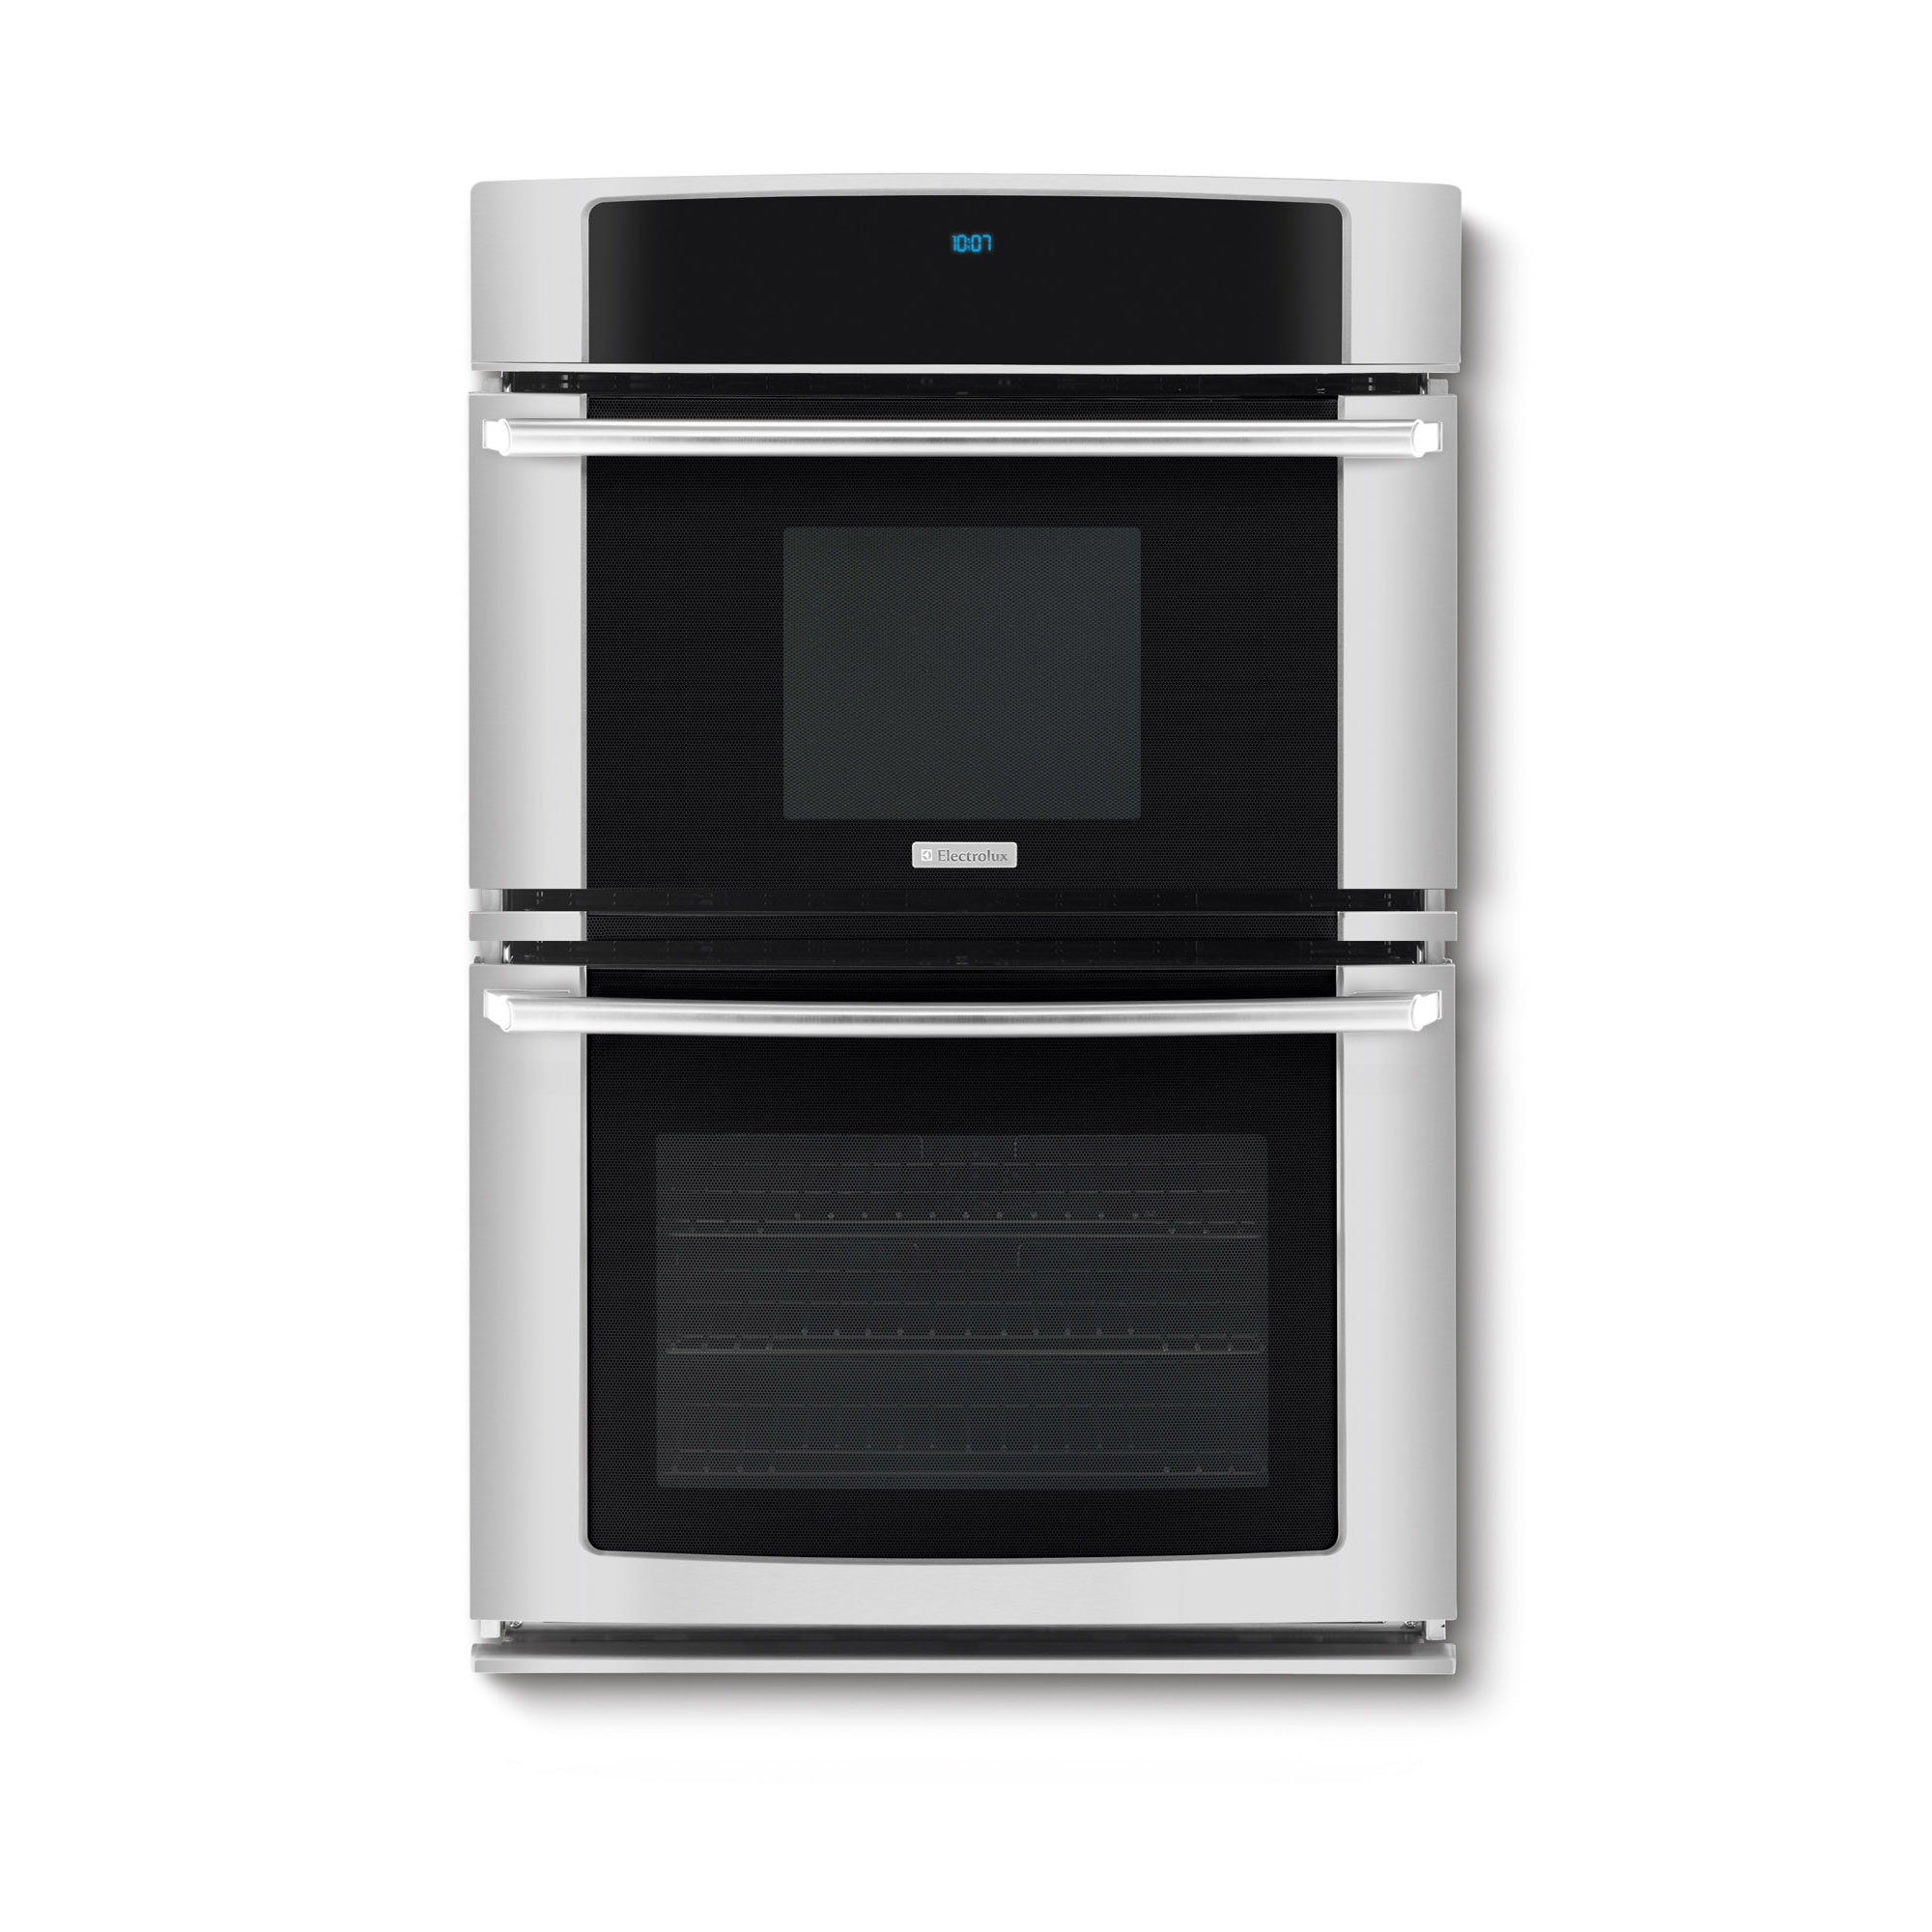 Electrolux Wall Oven and Microwave Combination with Wave-Touch Controls